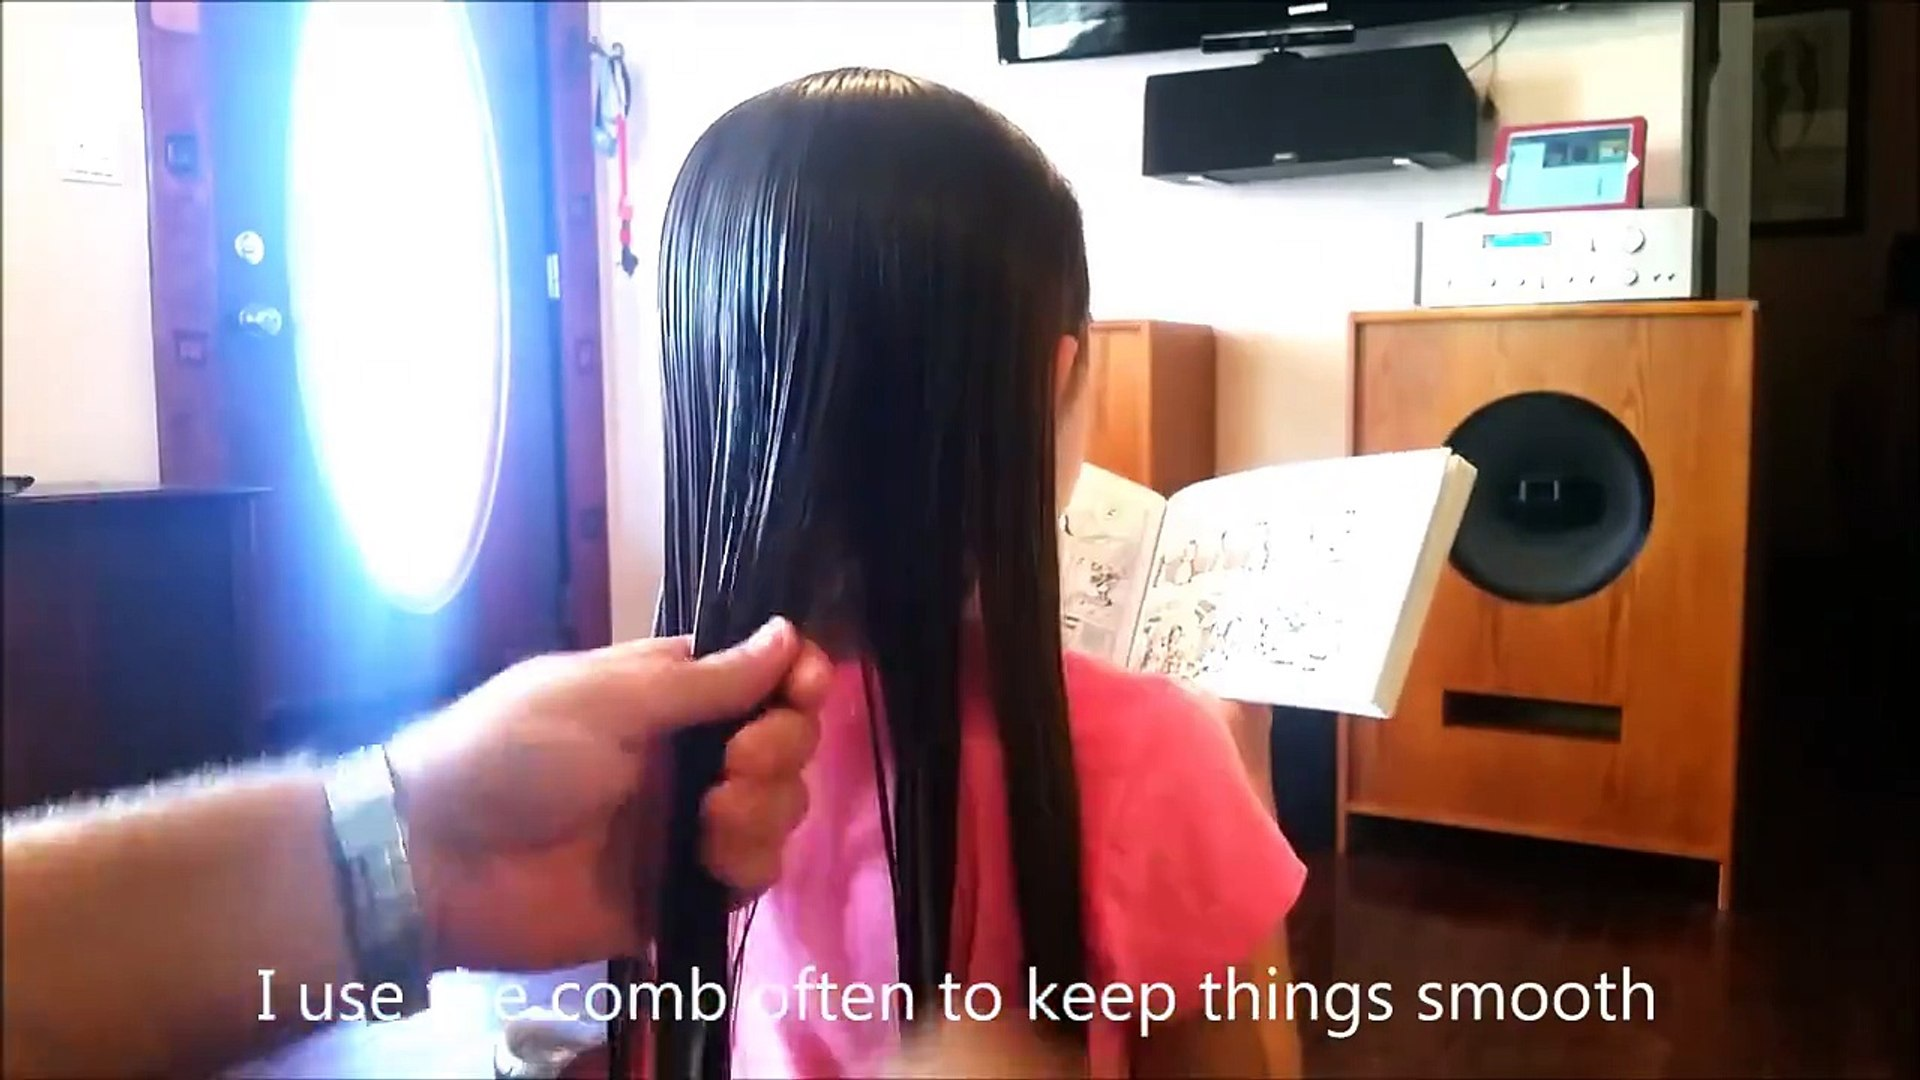 6 strand braid tutorial by Dad! Credit: Daddy Daughter Hair Factory